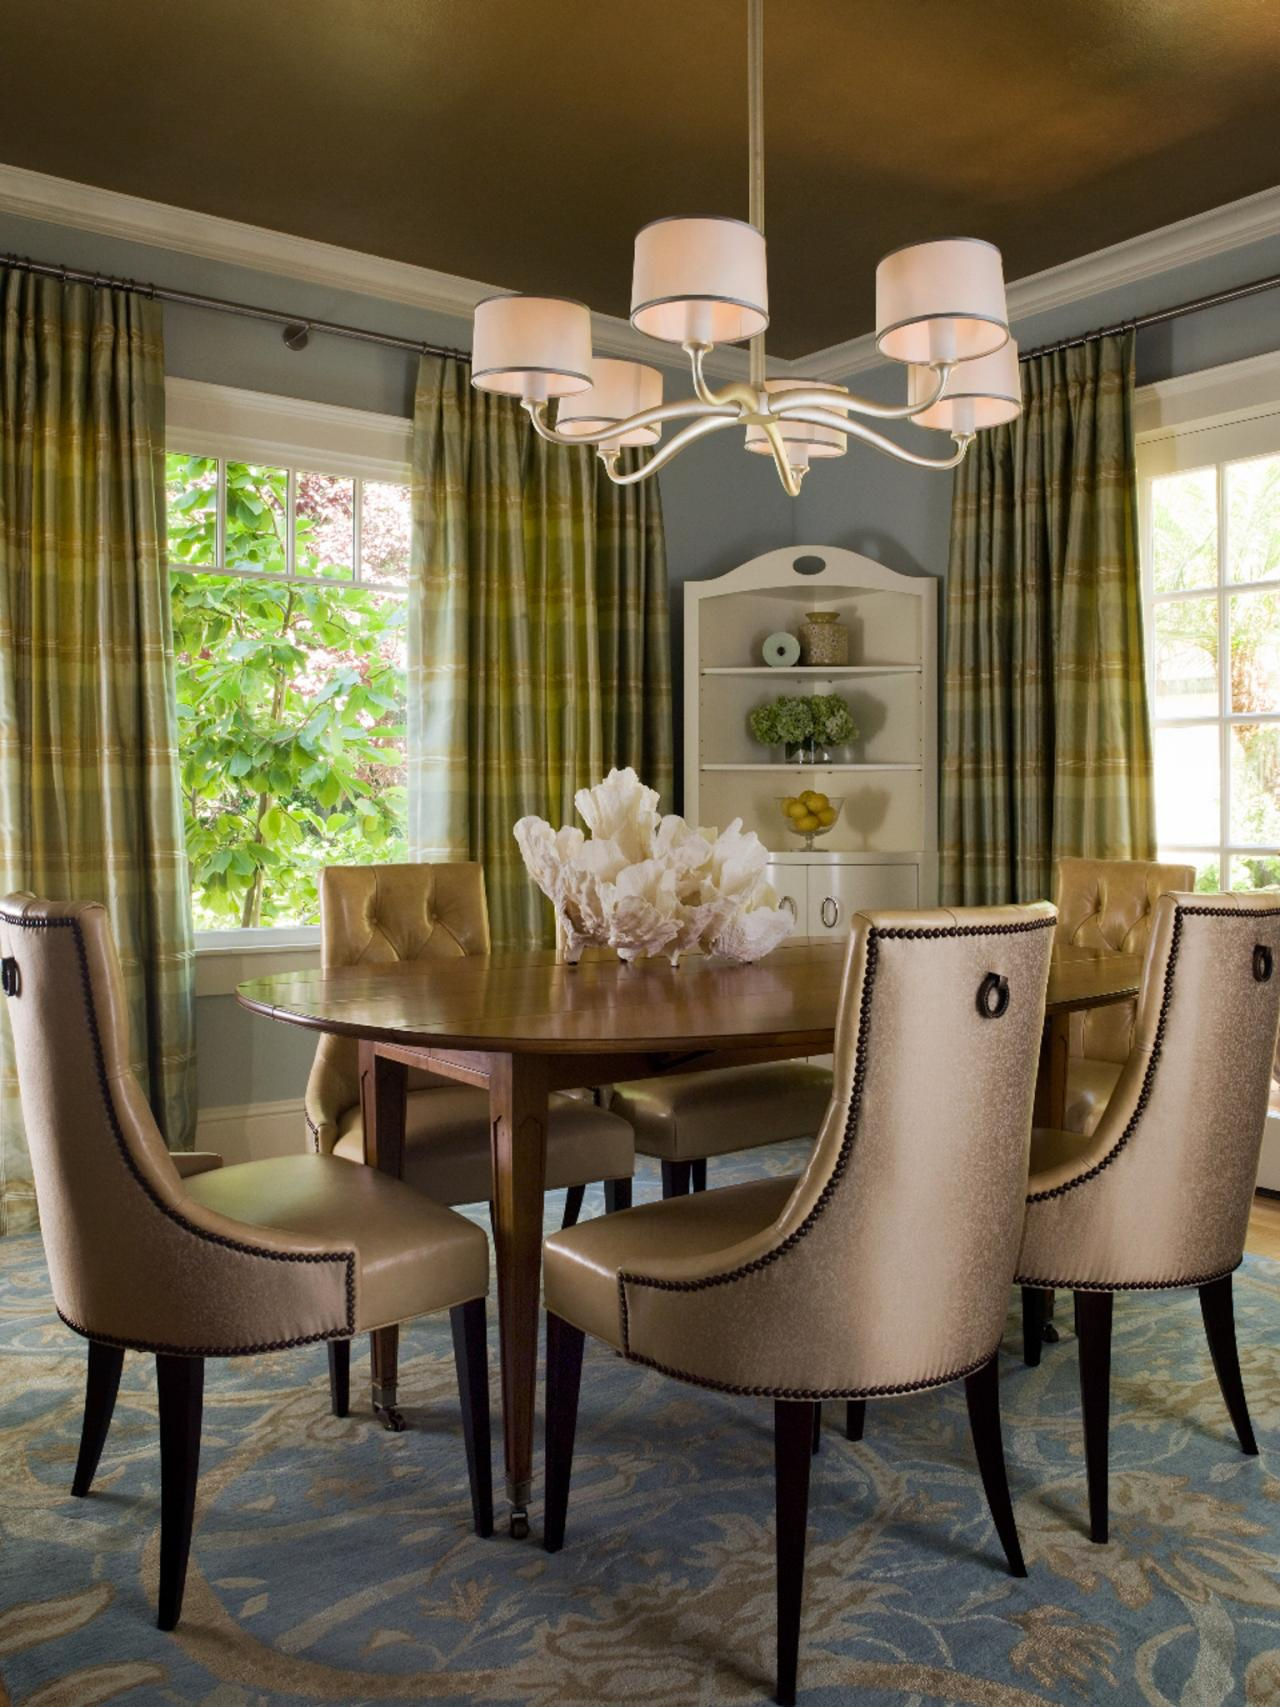 25 Transitional Dining Room Design Ideas - Decoration Love